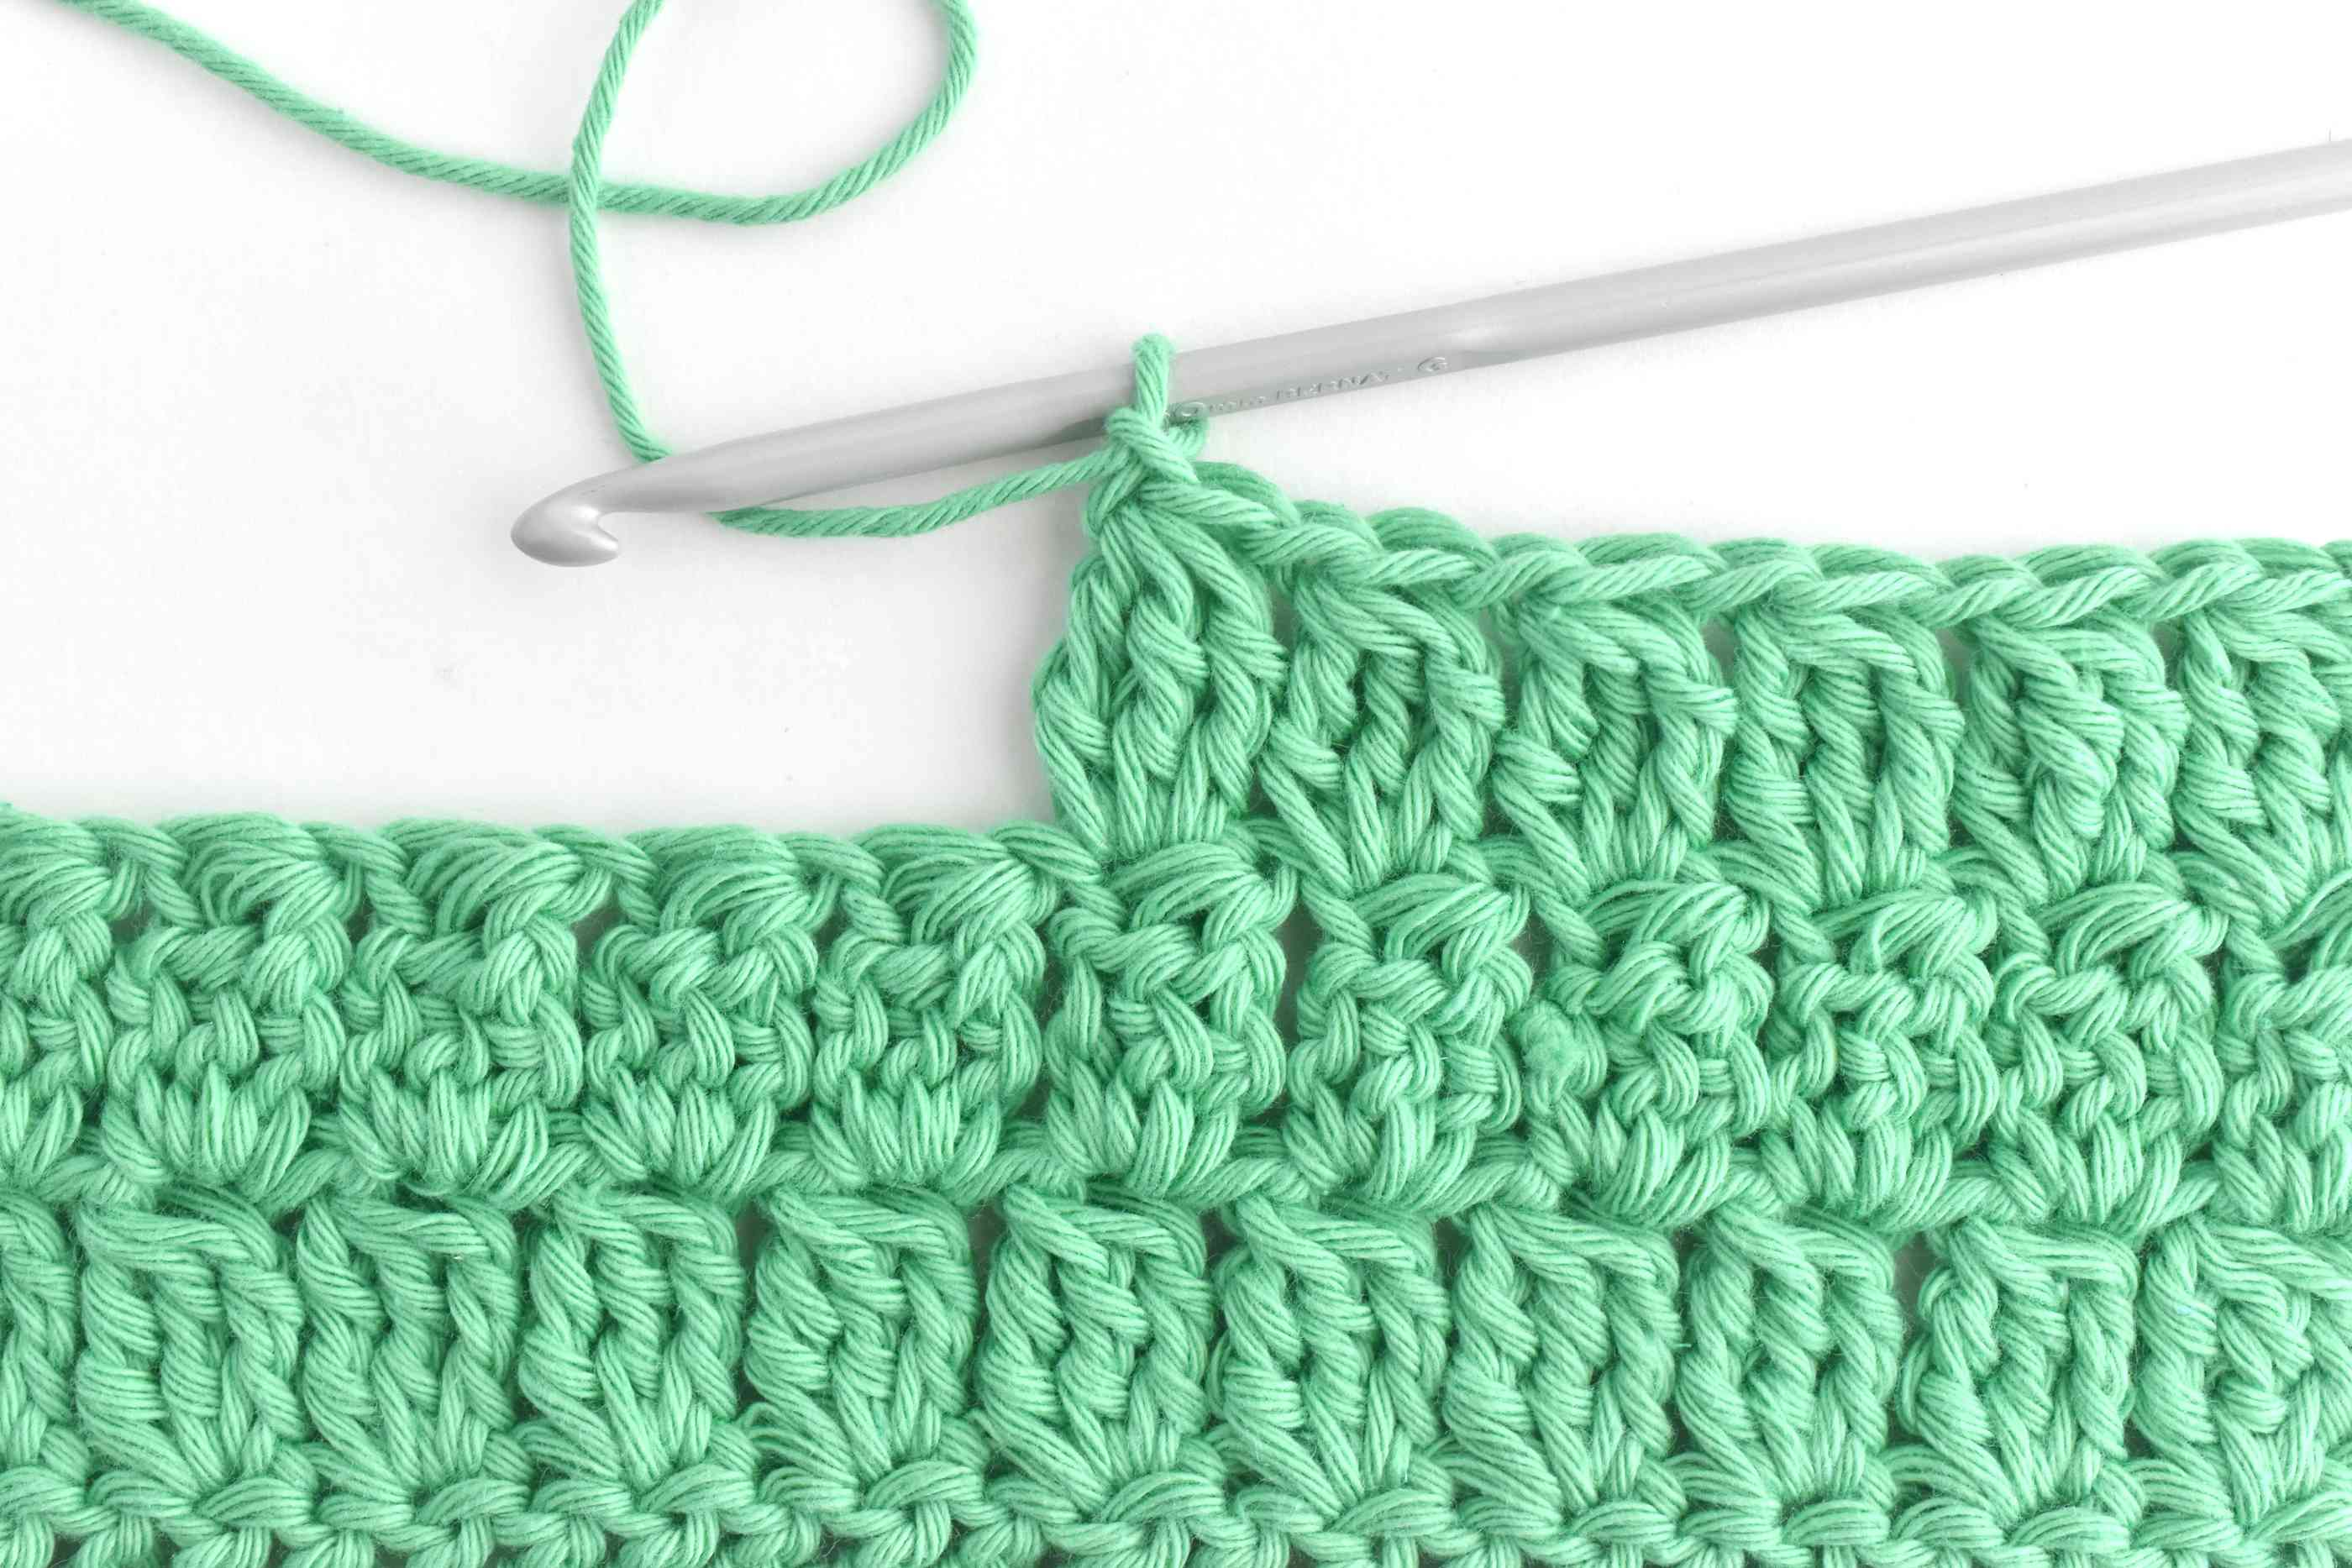 Rows of Treble Crochet Clusters Worked Back and Forth